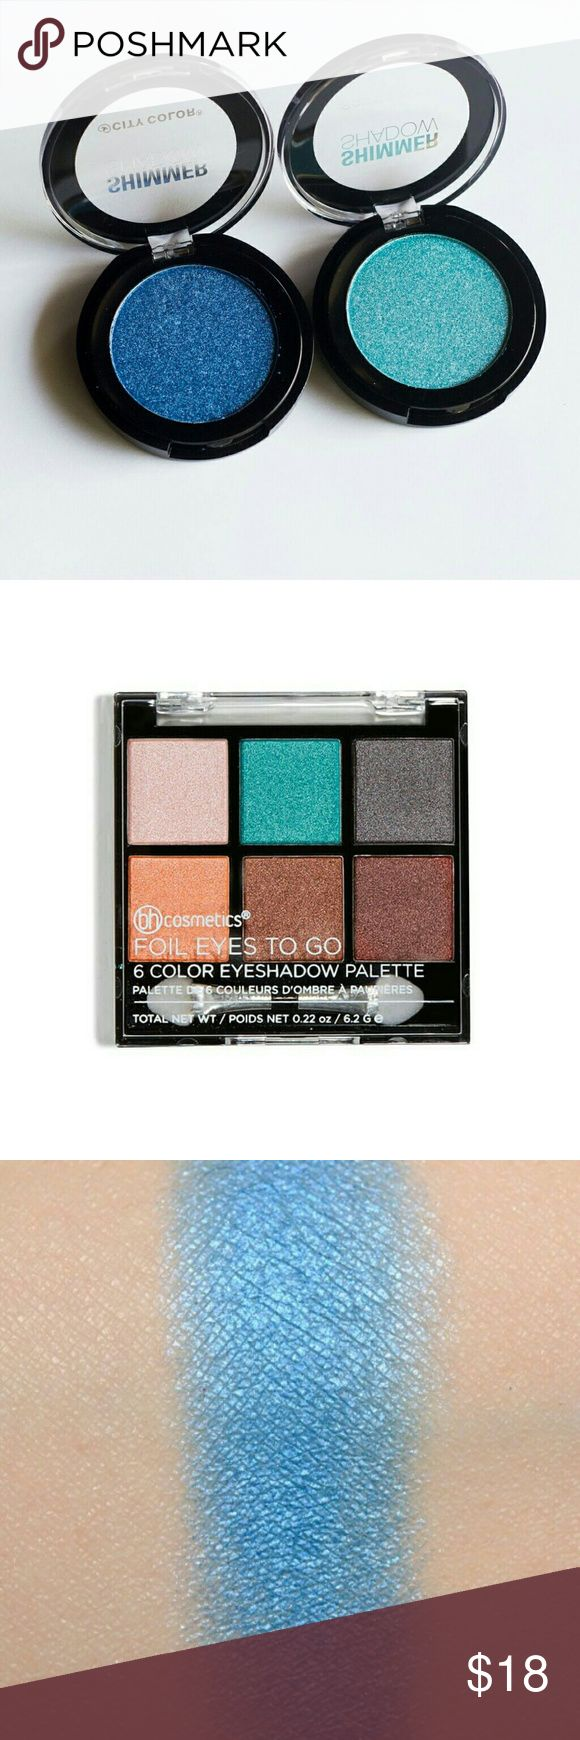 """CITY COLOR & BH COSMETICS BUNDLE CITY COLOR  ~SINGLE SHADOWS   ~ It's a Boy ~ Lightly Swatched    ~ Breezy ~ Lightly Swatched  BH COSMETICS  ~ FOIL EYESHADOW TO GO   ~ 6 SHADOW PALETTE      ~ One shadow lightly swatched  ALL 3 AVAILABLE  """"As-is"""" SMOKE FREE and PET FREE HOME City Color & BH Cosmetics  Makeup Eyeshadow"""